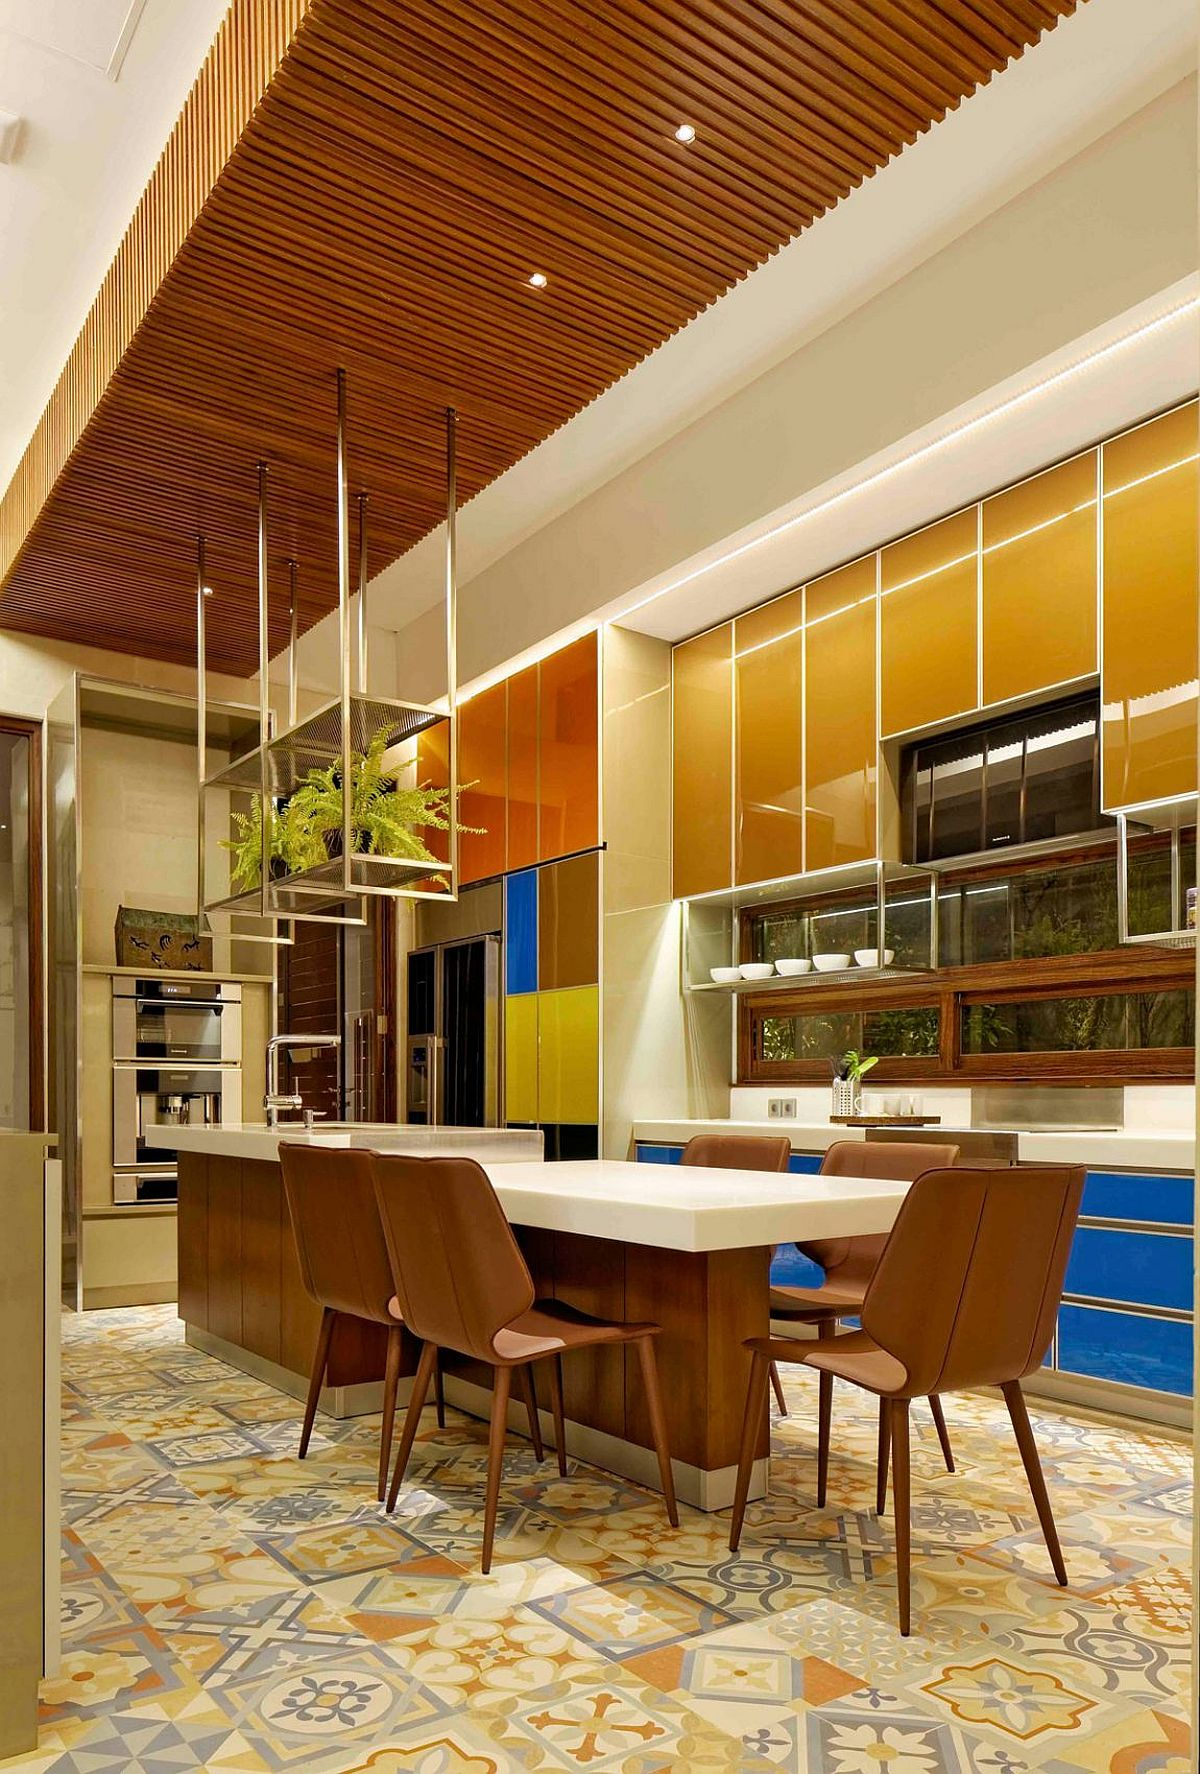 Blocks of color and an intricate ceiling create a fabulous dining room